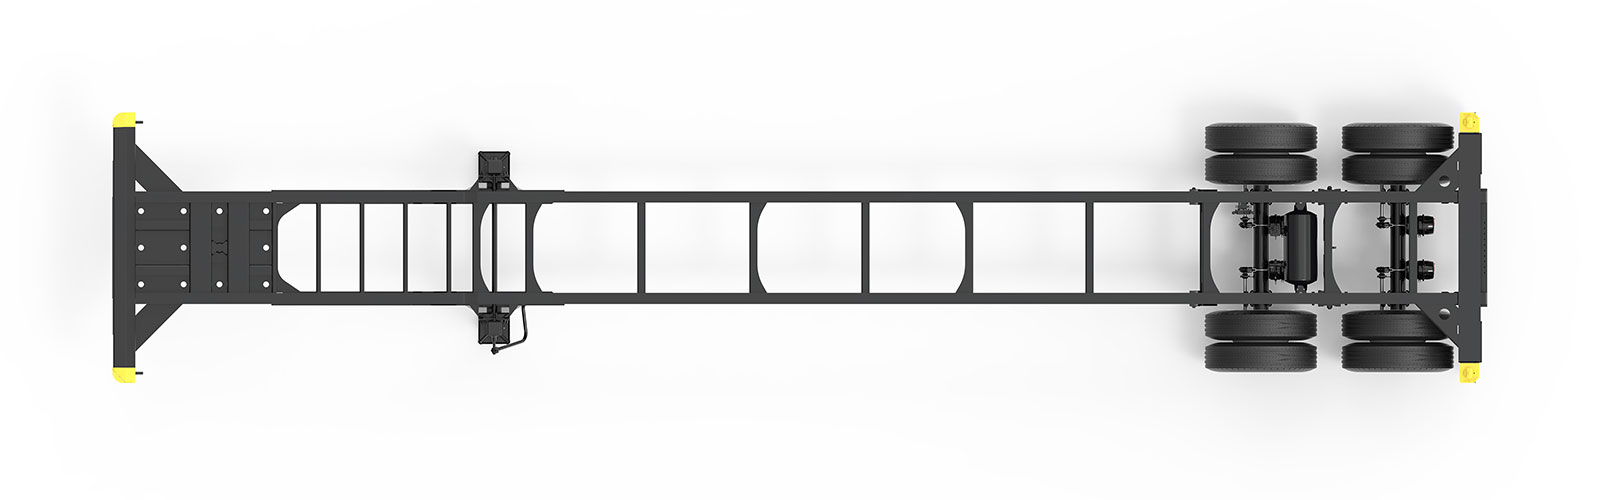 40' Gooseneck Tandem Container Chassis Orthographic Top View Final